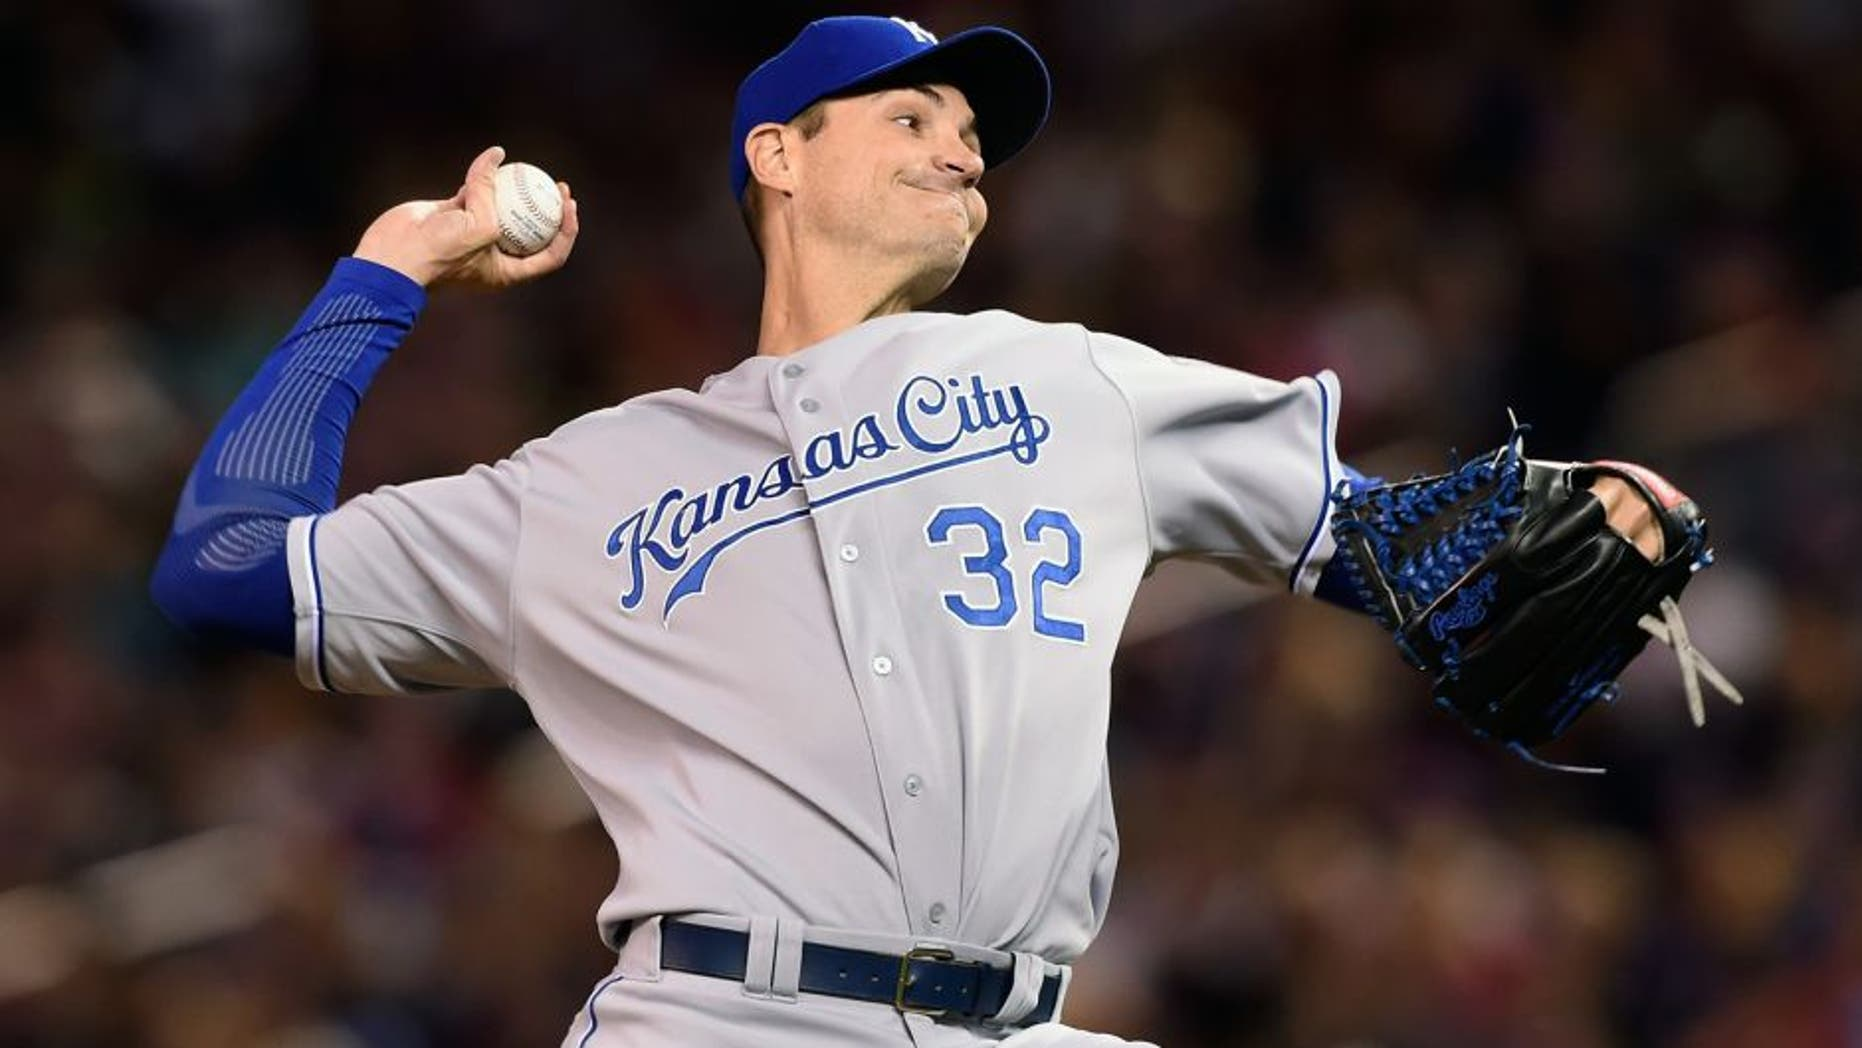 MINNEAPOLIS, MN - OCTOBER 2: Chris Young #32 of the Kansas City Royals delivers a pitch against the Minnesota Twins during the first inning of the game on October 2, 2015 at Target Field in Minneapolis, Minnesota. (Photo by Hannah Foslien/Getty Images)